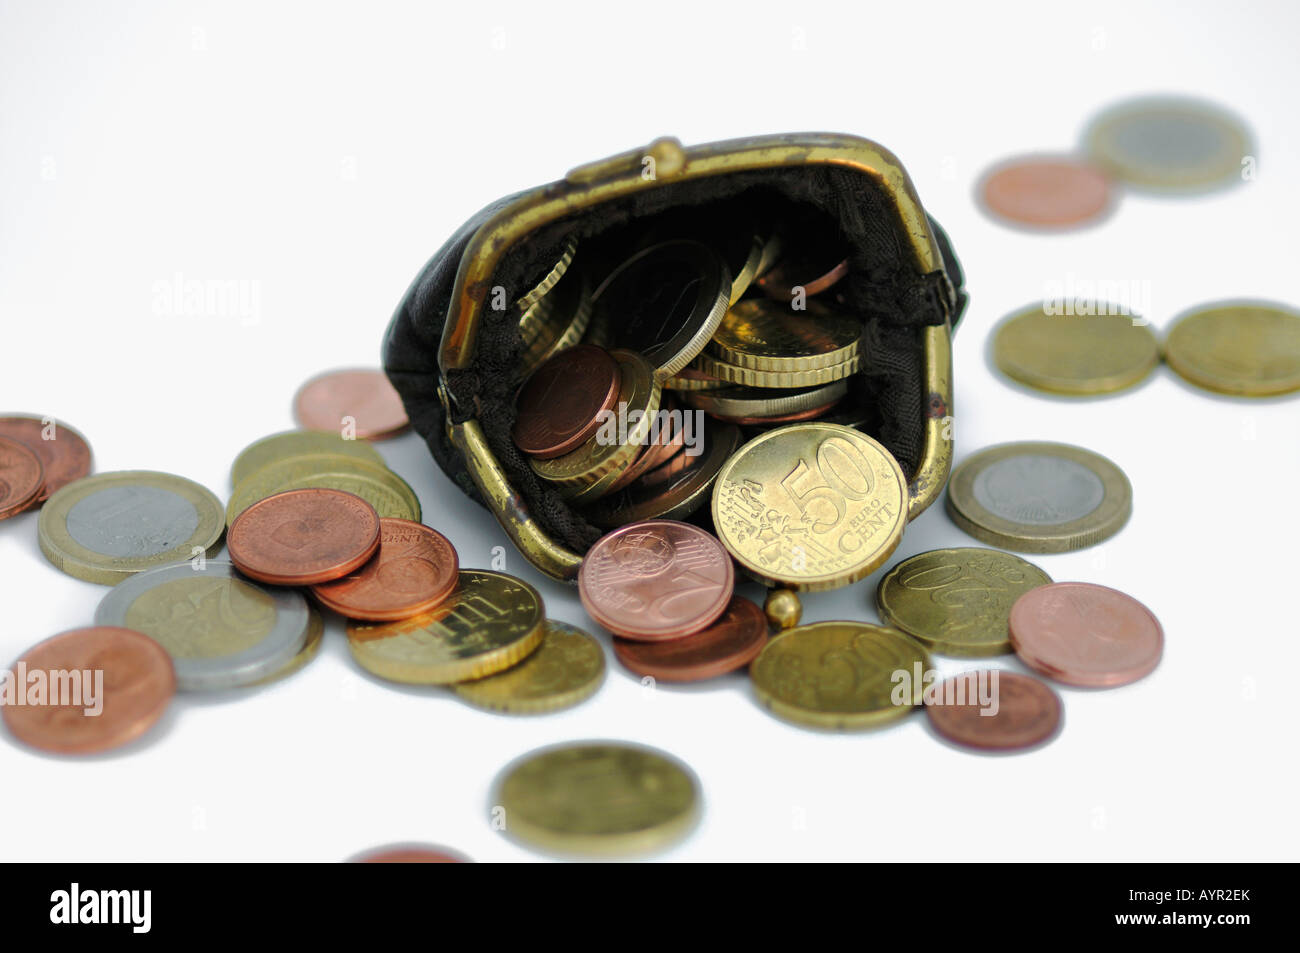 Wallet full of Euro coins - Stock Image